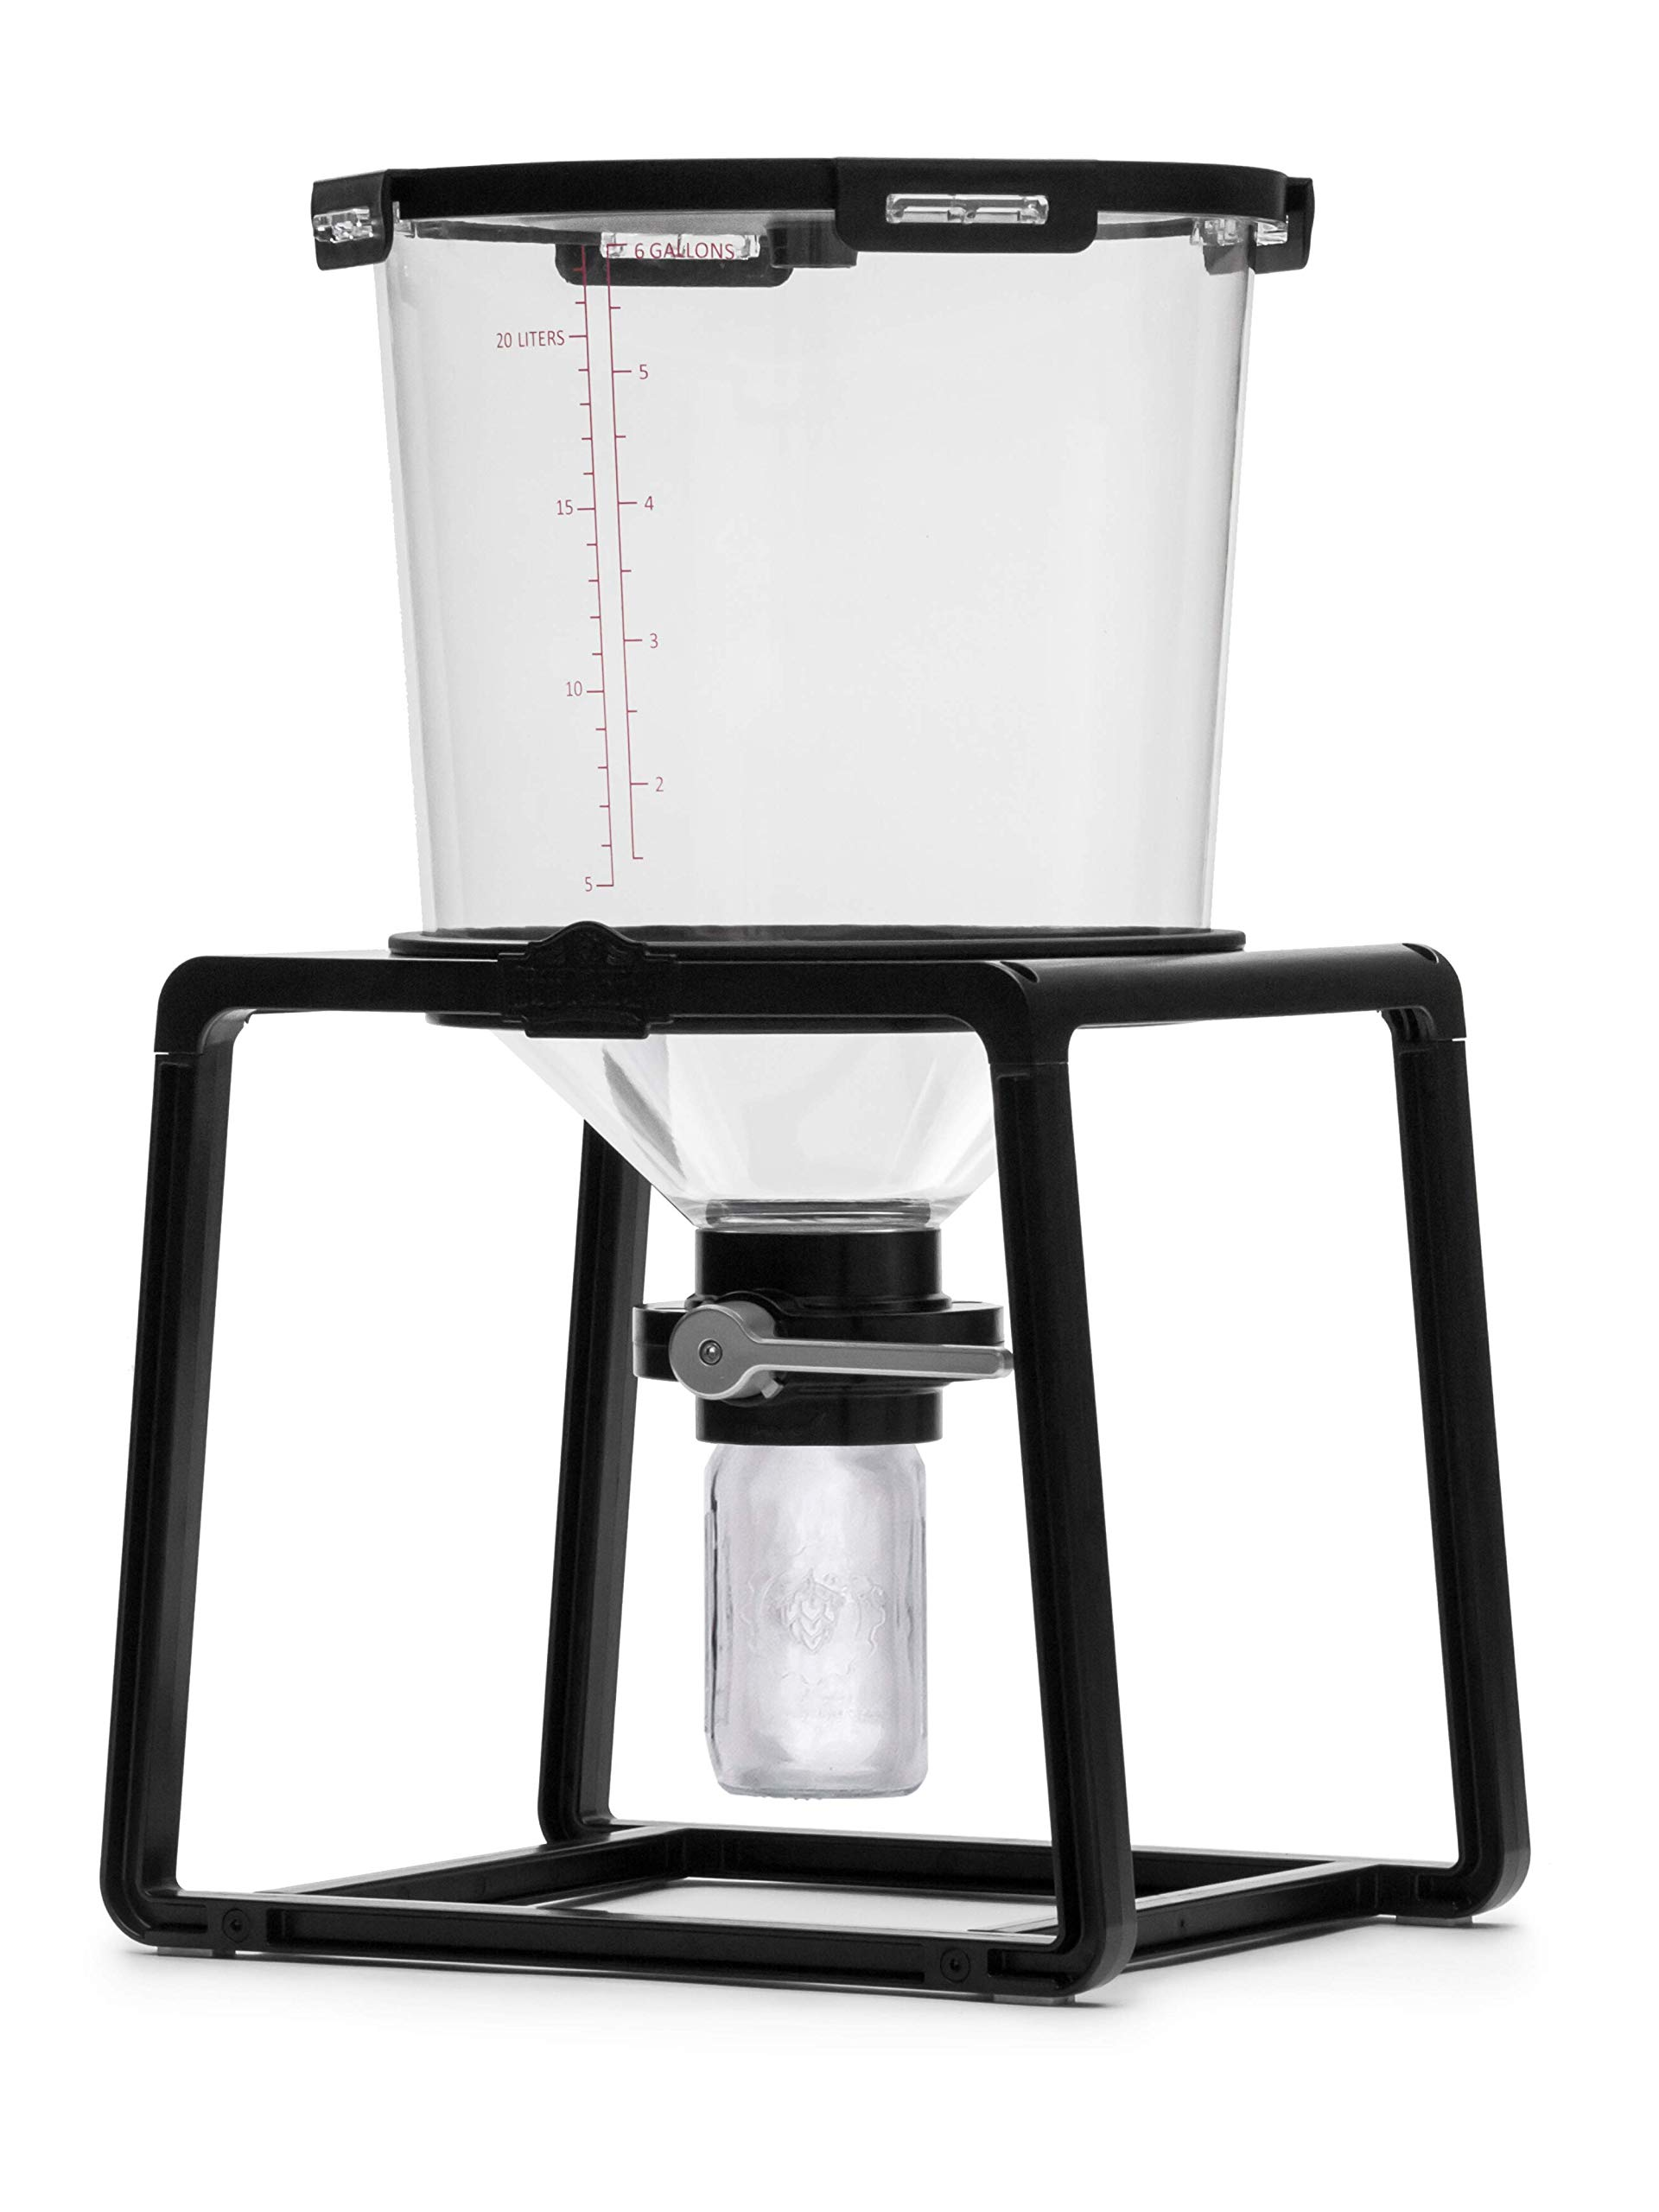 Craft A Brew - BE-CAT The Catalyst Fermentation System, Craft a Brew, 6.5 gal Conical Fermenter for Beer Home Brewing and Wine Making